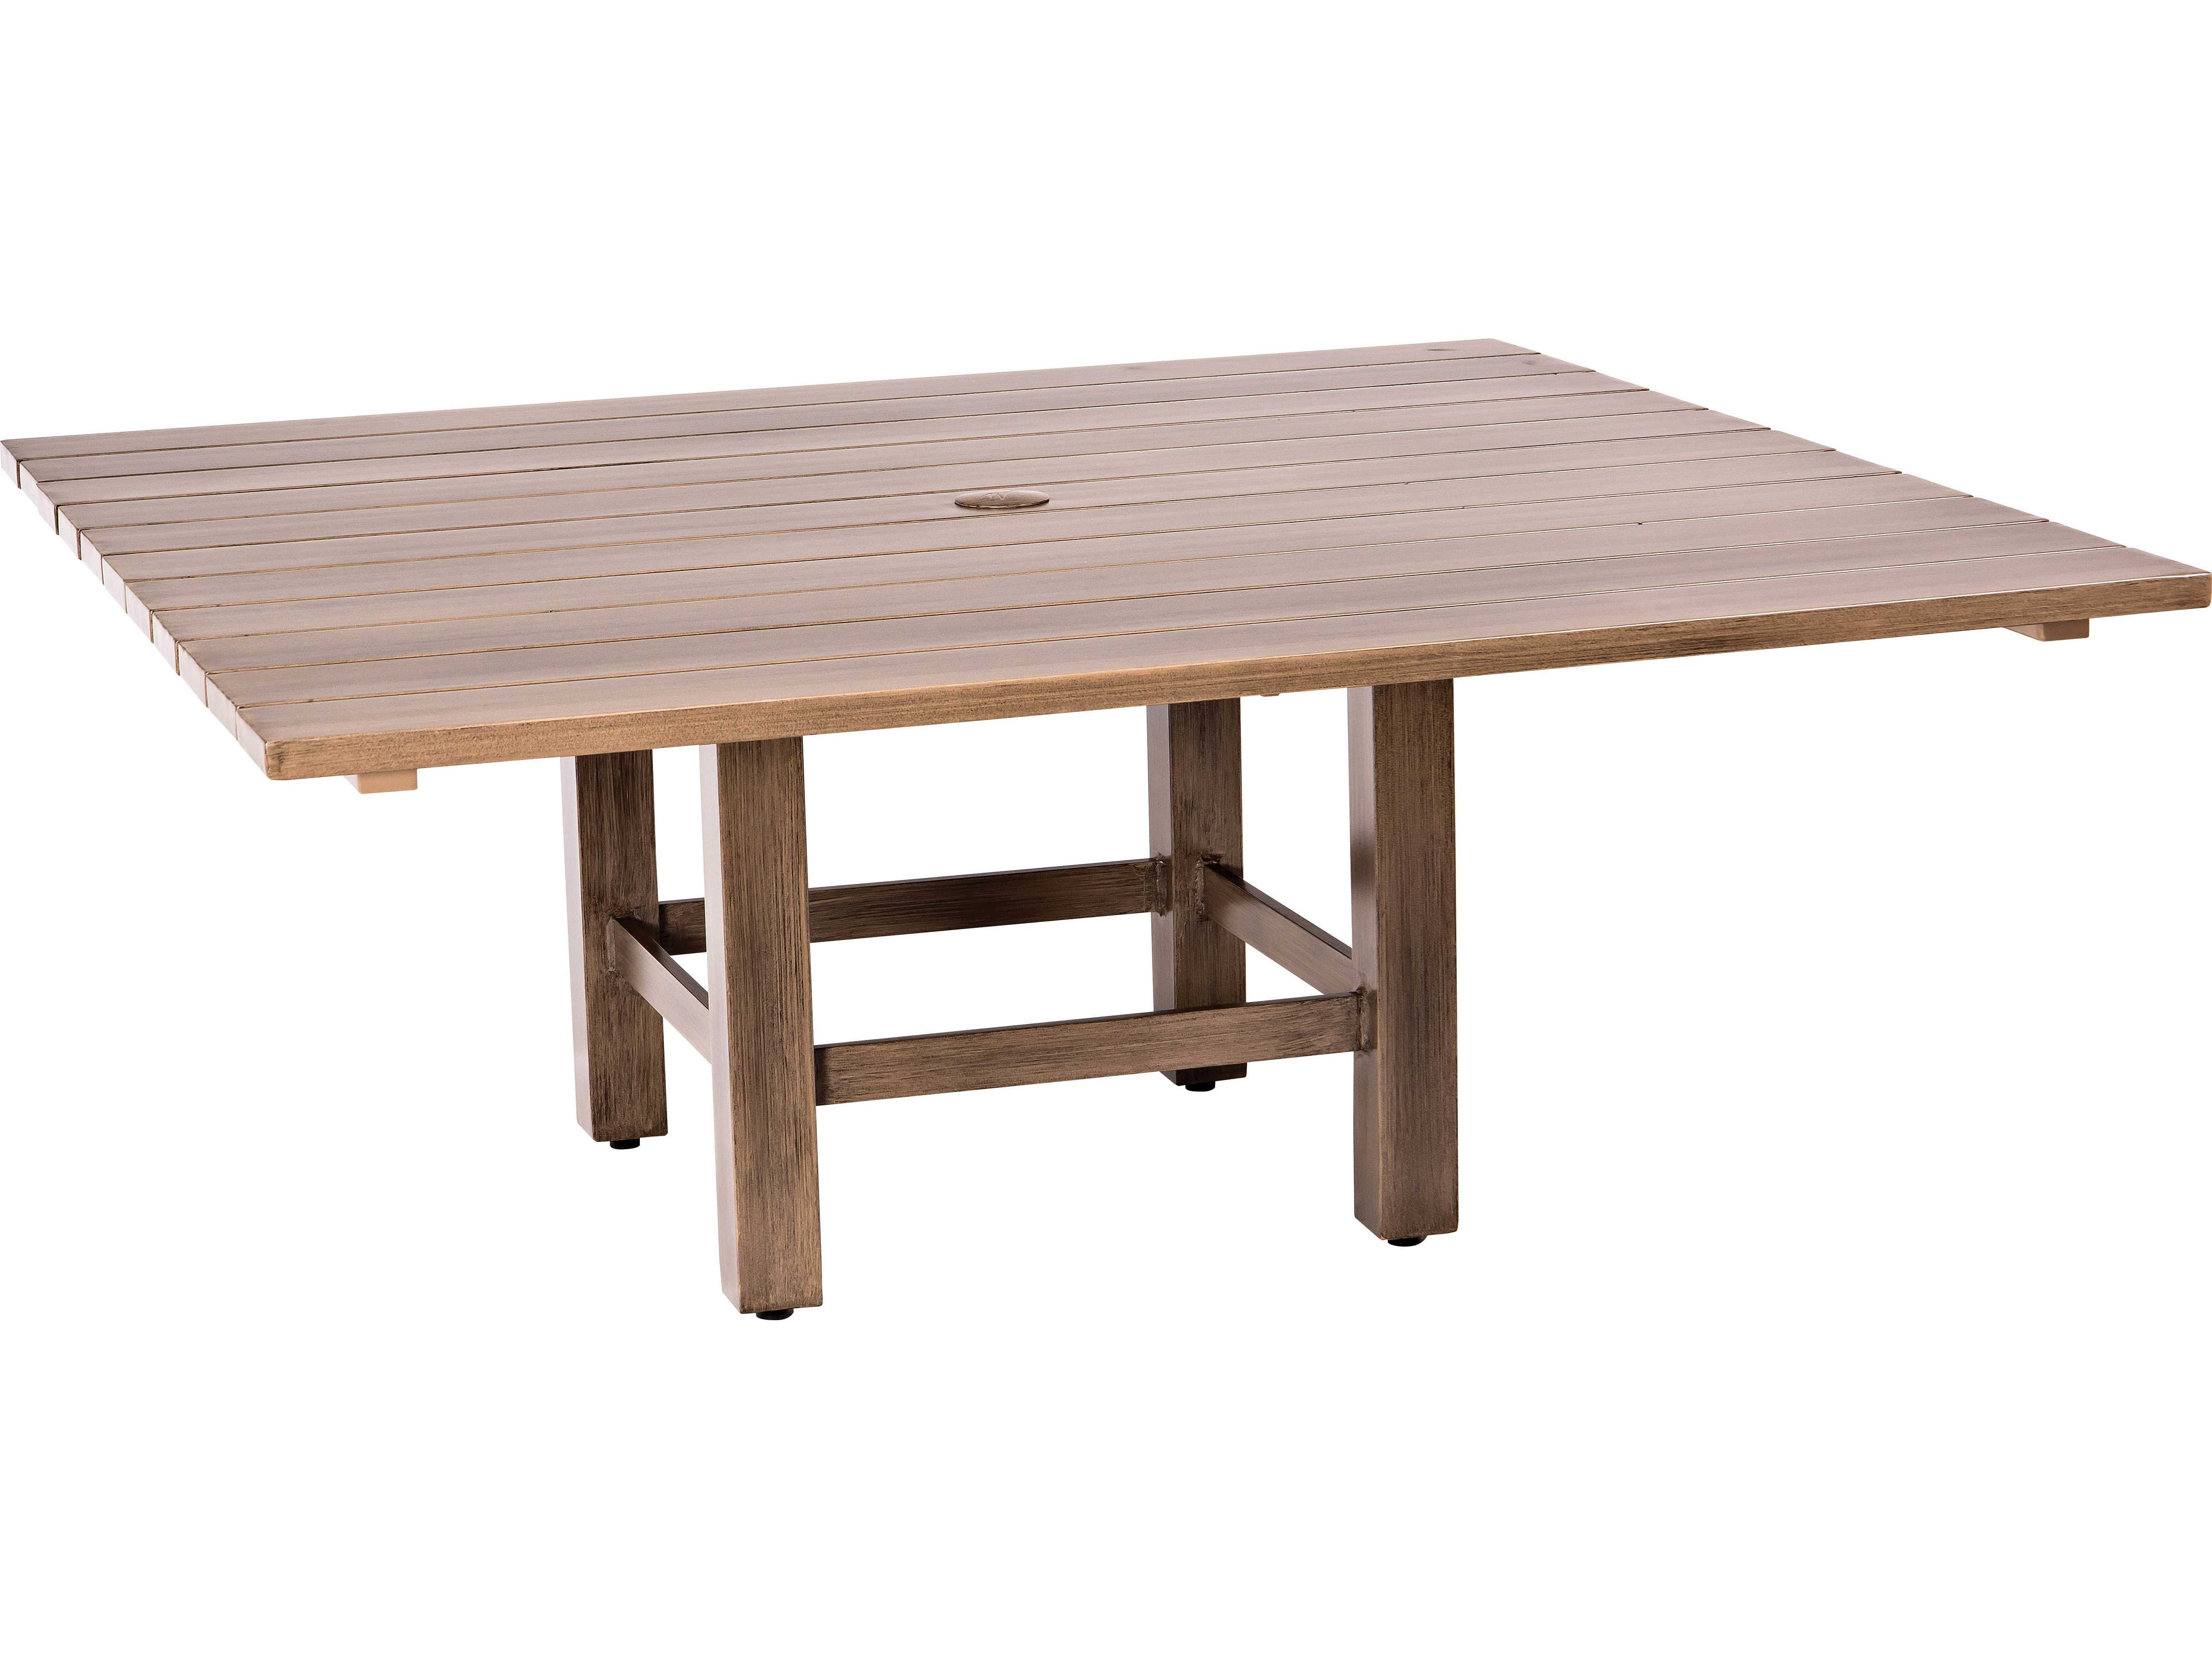 Woodard woodlands aluminum 52 square dining table with - Picnic table with umbrella hole ...